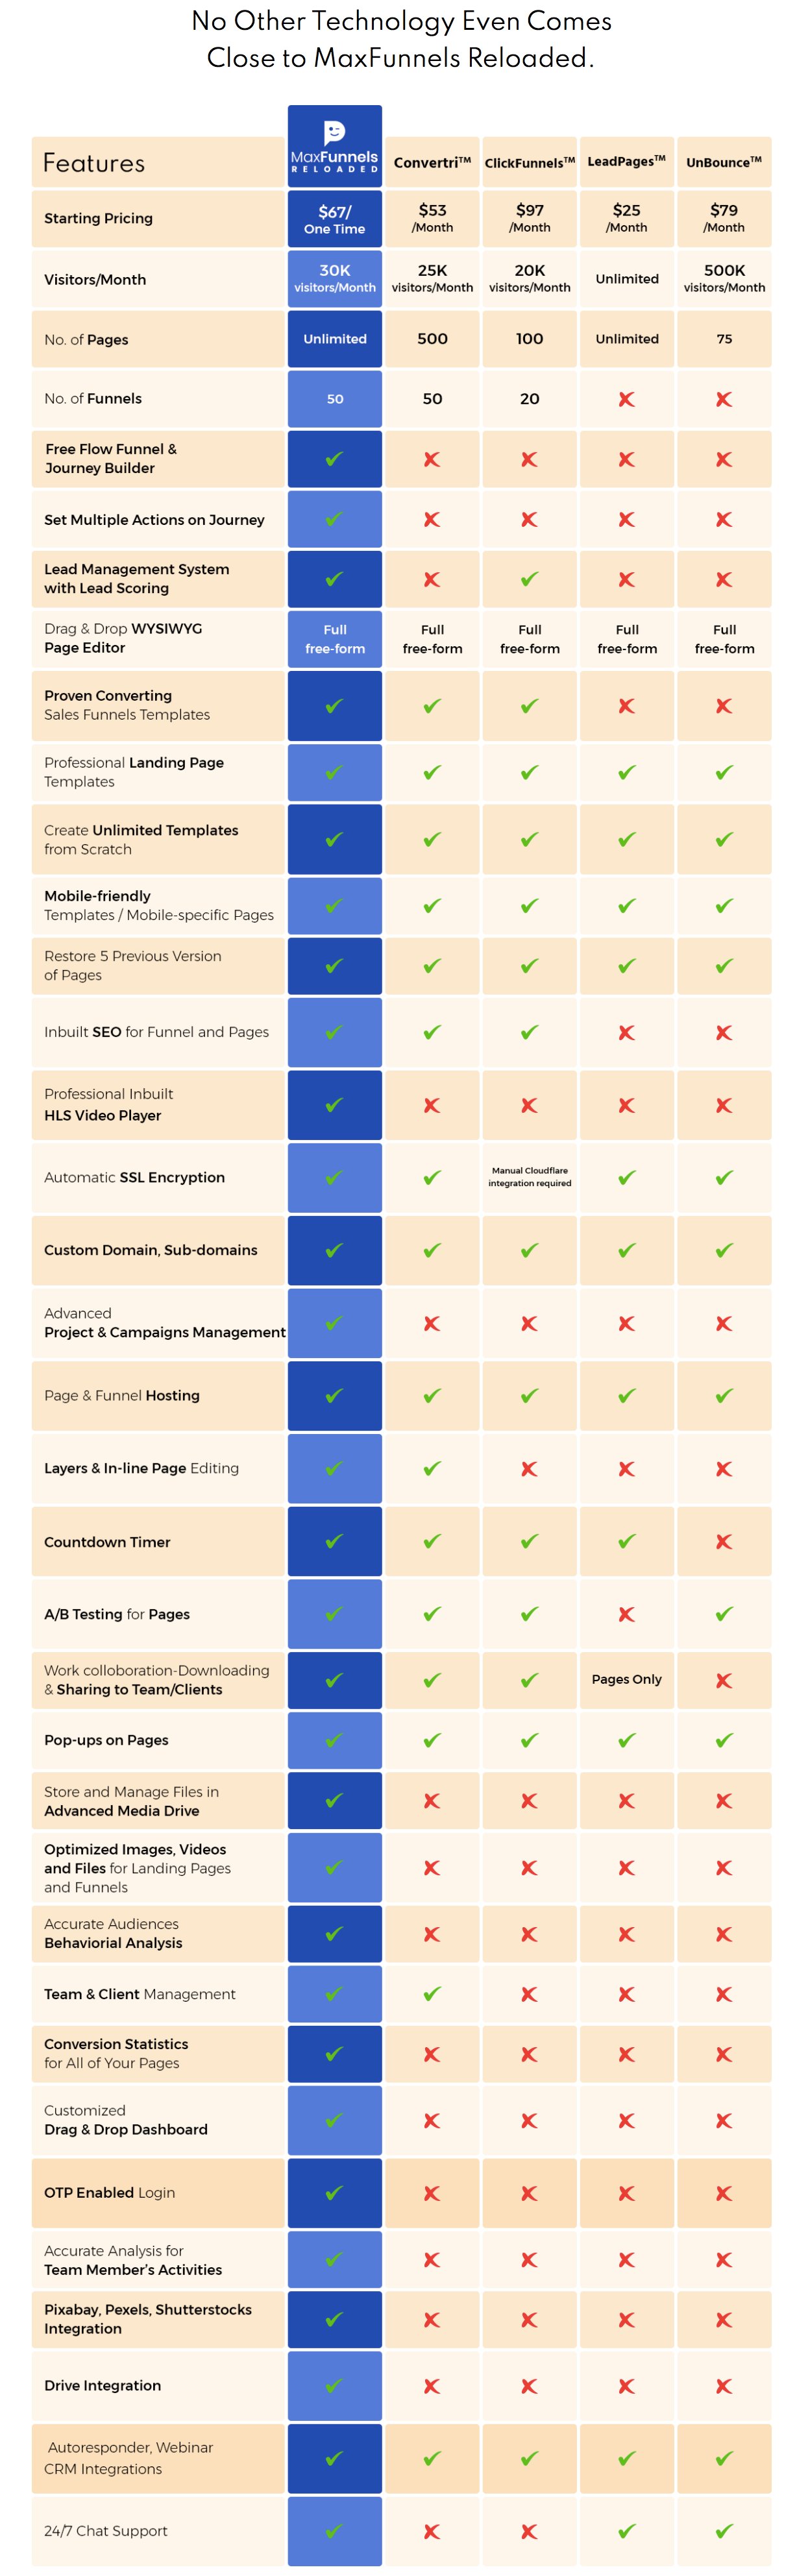 MaxFunnels-Reloaded-Review-Comparison